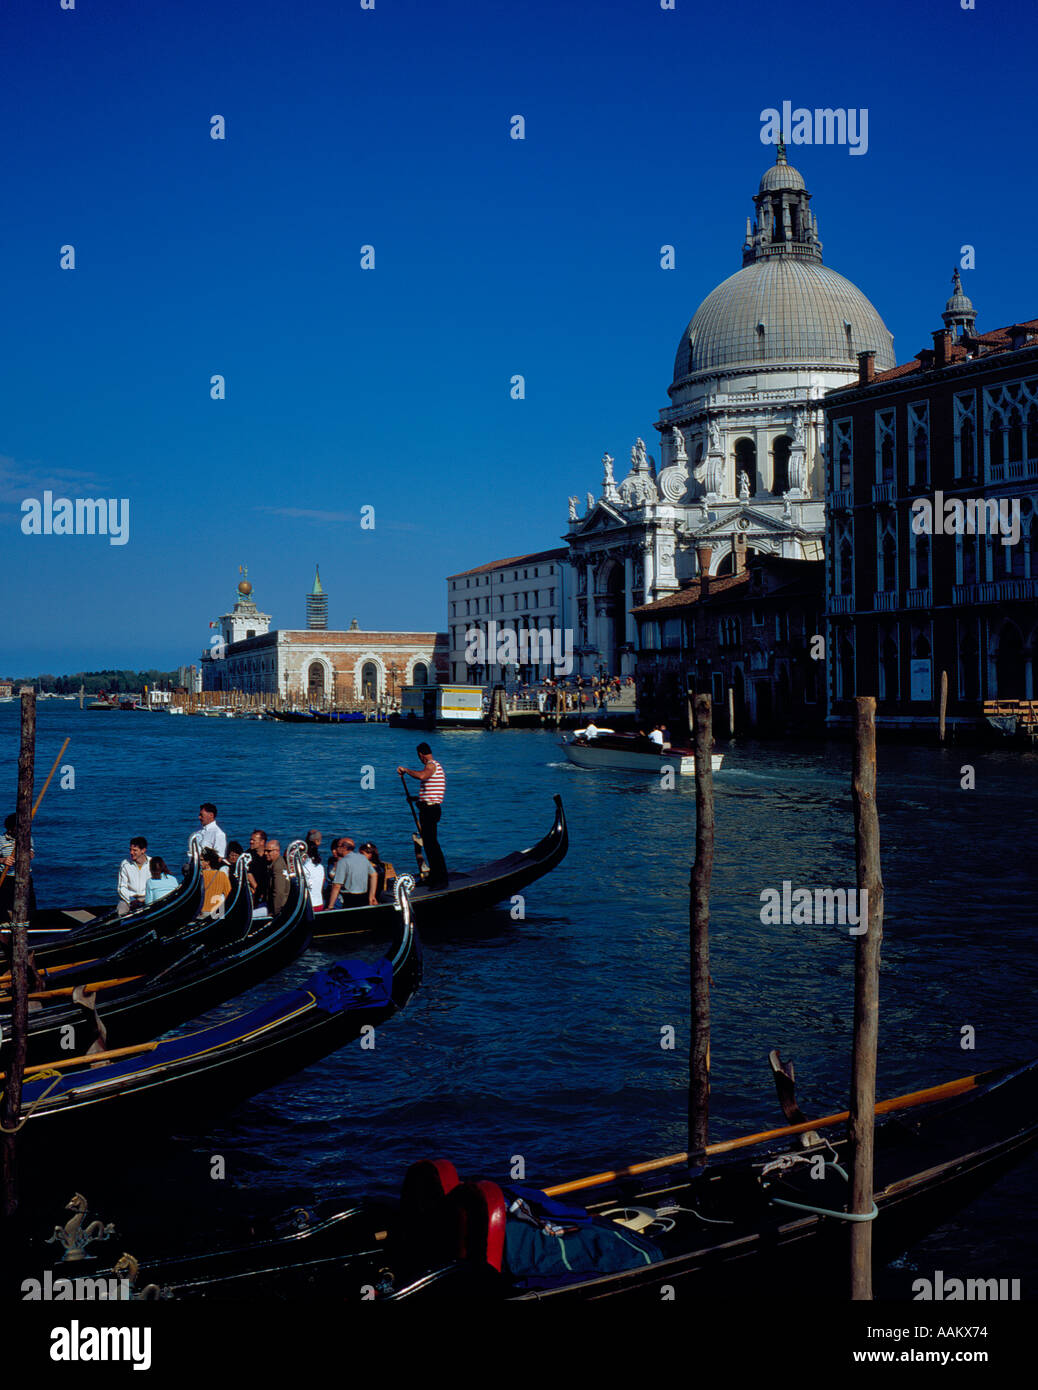 Canal Grande with gondolas transporting people Venice, UNESCO World Heritage Site, Italy,  Europe. Photo by Willy Stock Photo